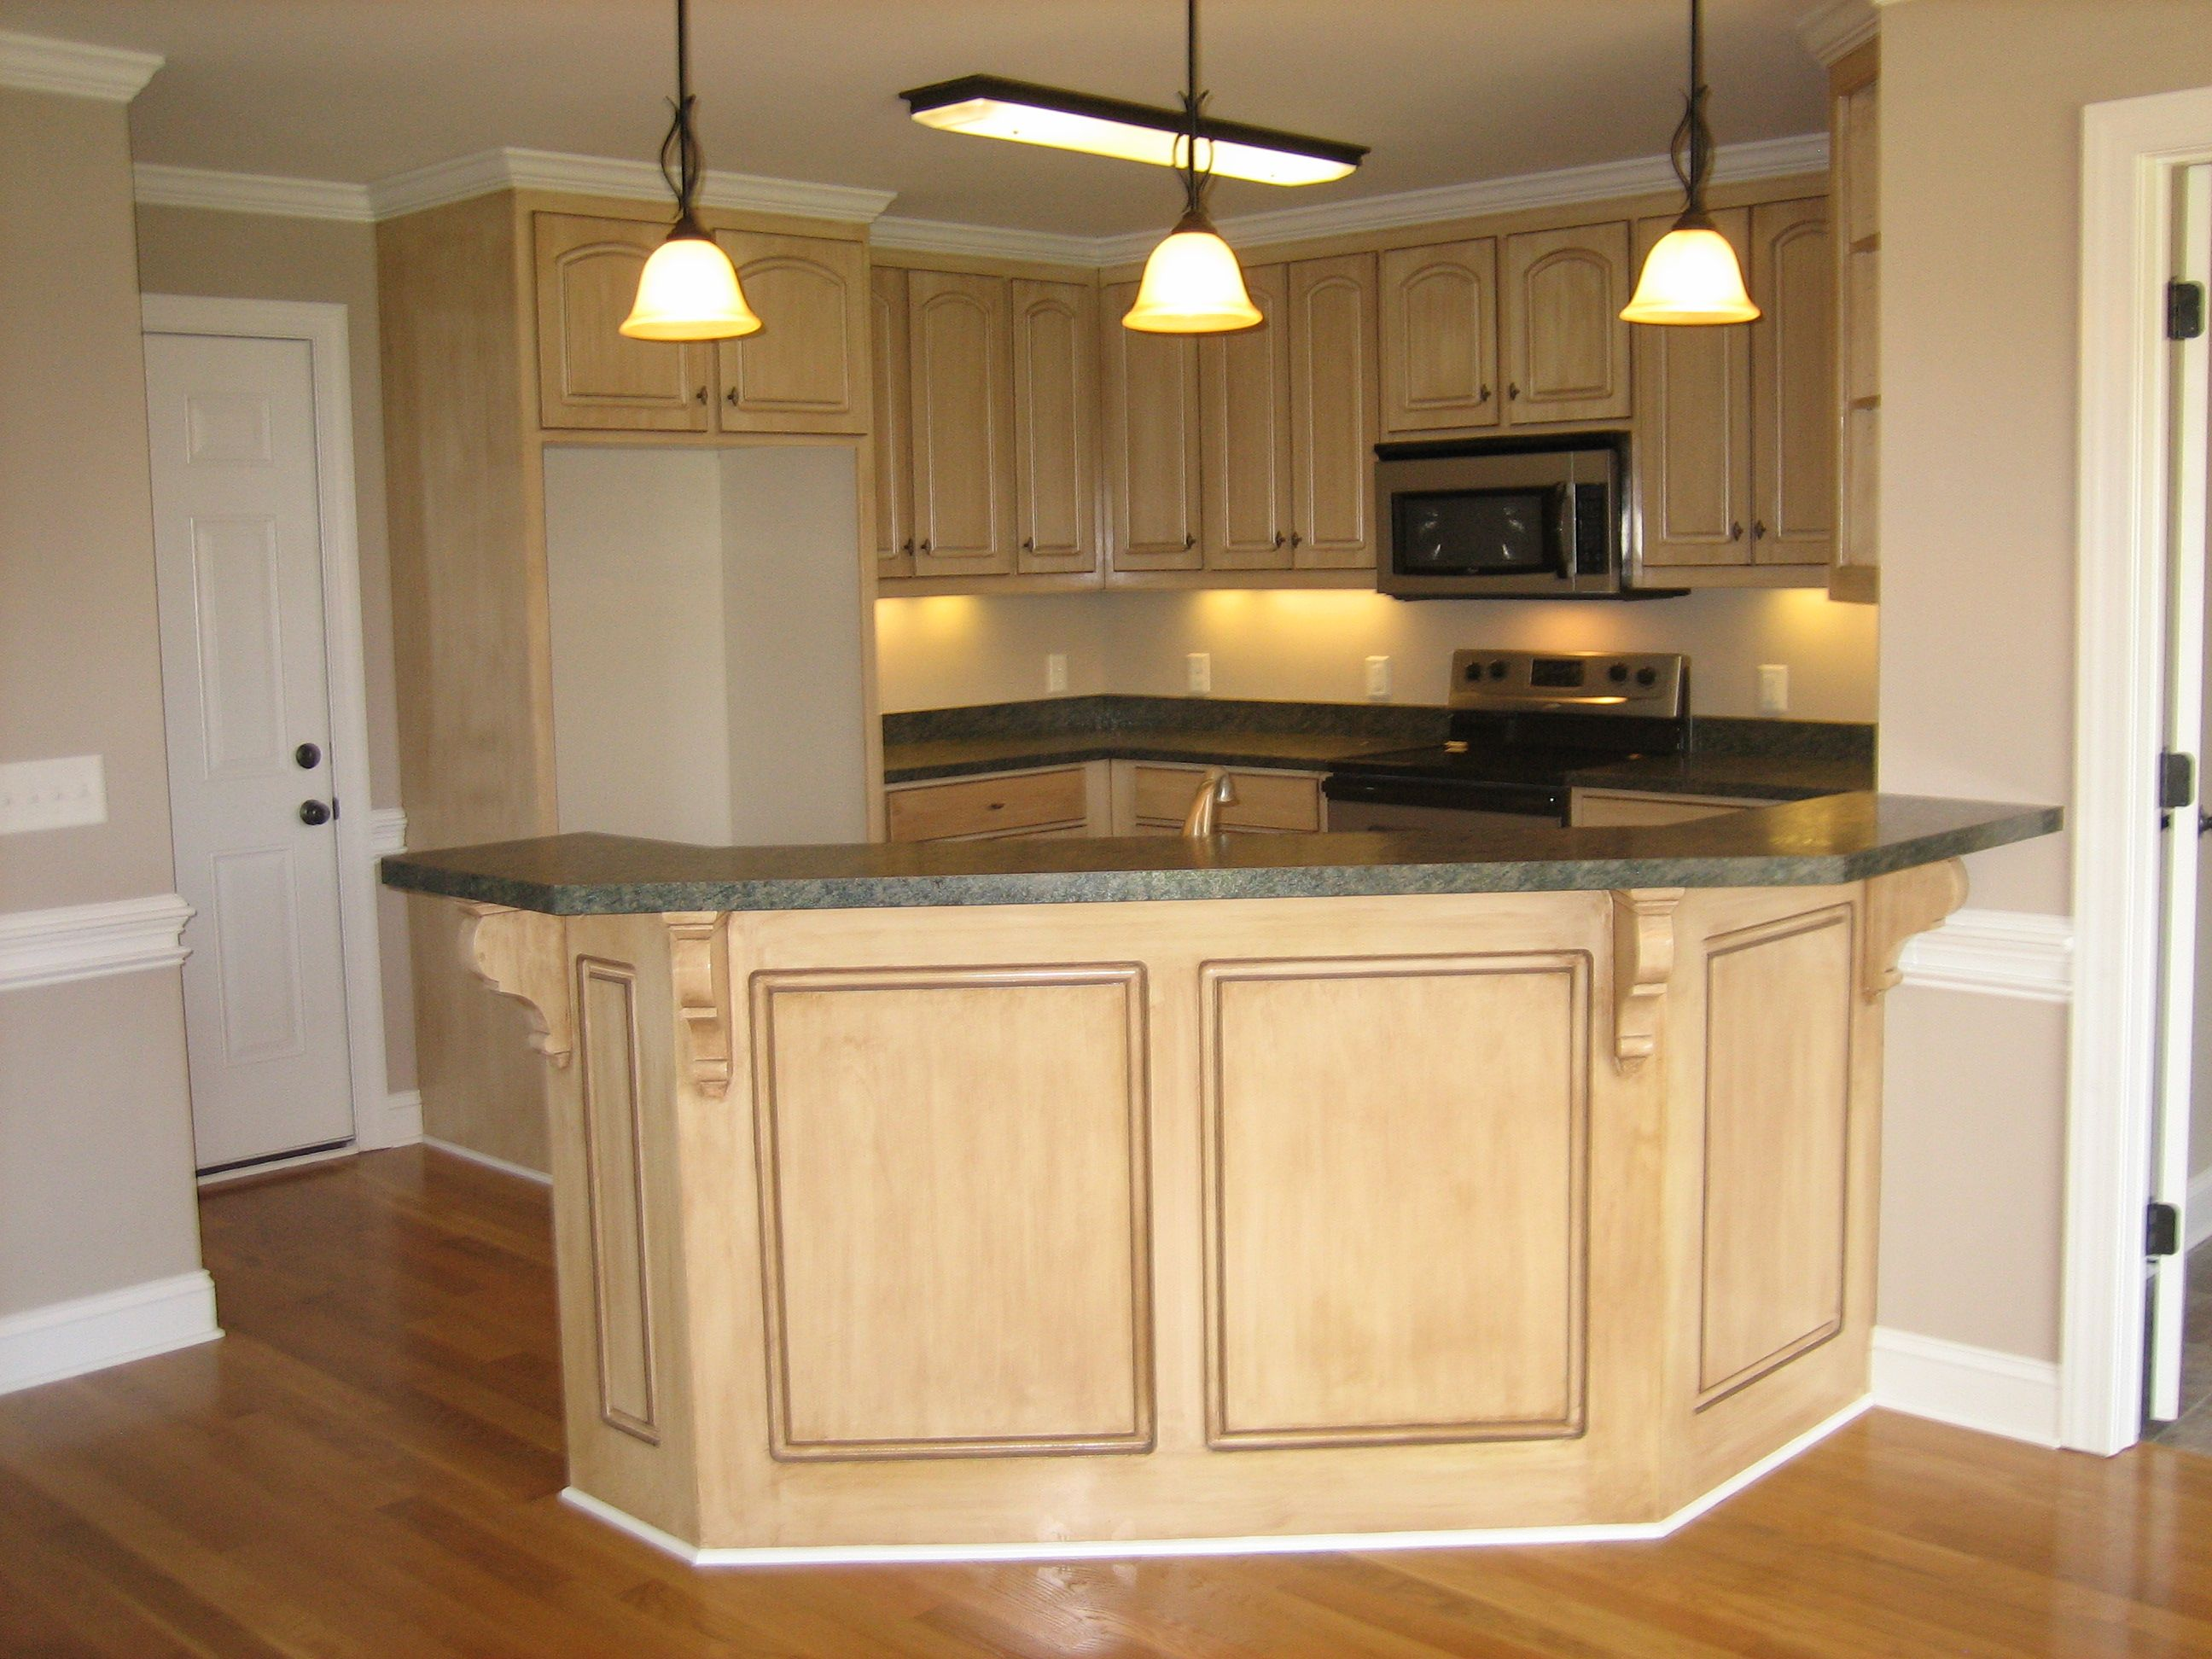 Home supply hawthorne nj -  Home Supply Kitchen Design Hawthorne Nj Kitchen Snack Bar Ideas Angled Kitchen39wb New House Ideas